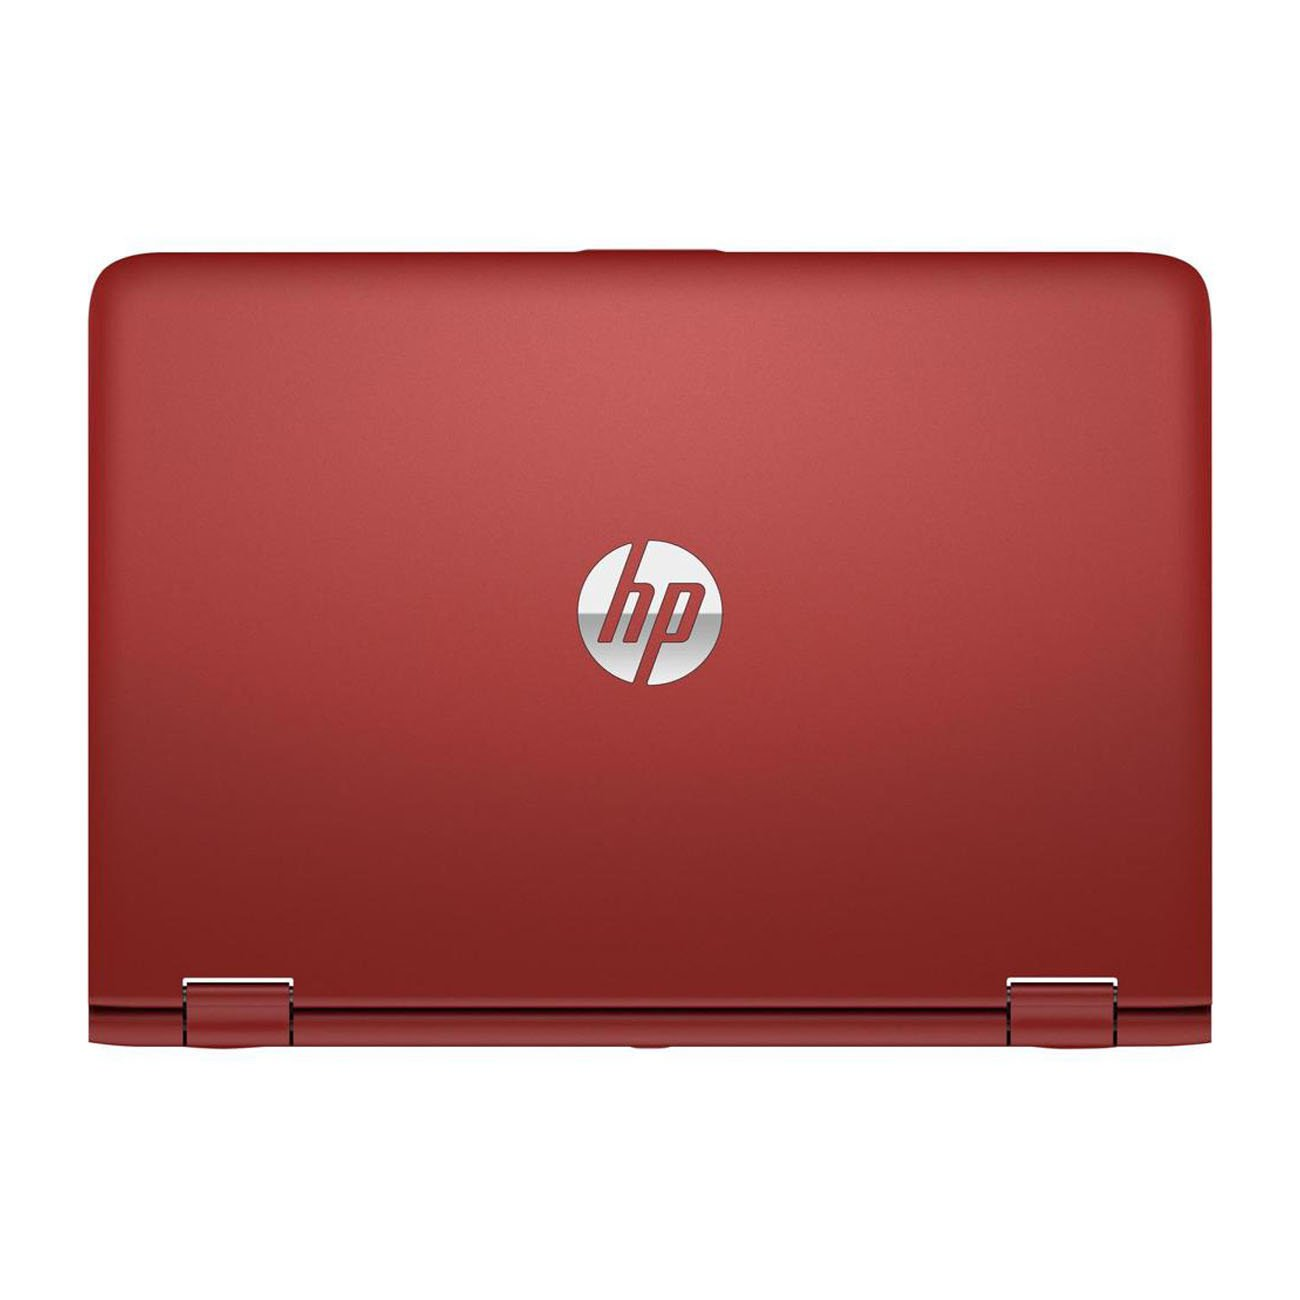 HP Pavilion 13-s121ds x360 13.3-inch Convertible Tablet PC i3-6100U 4GB 1TB by HP